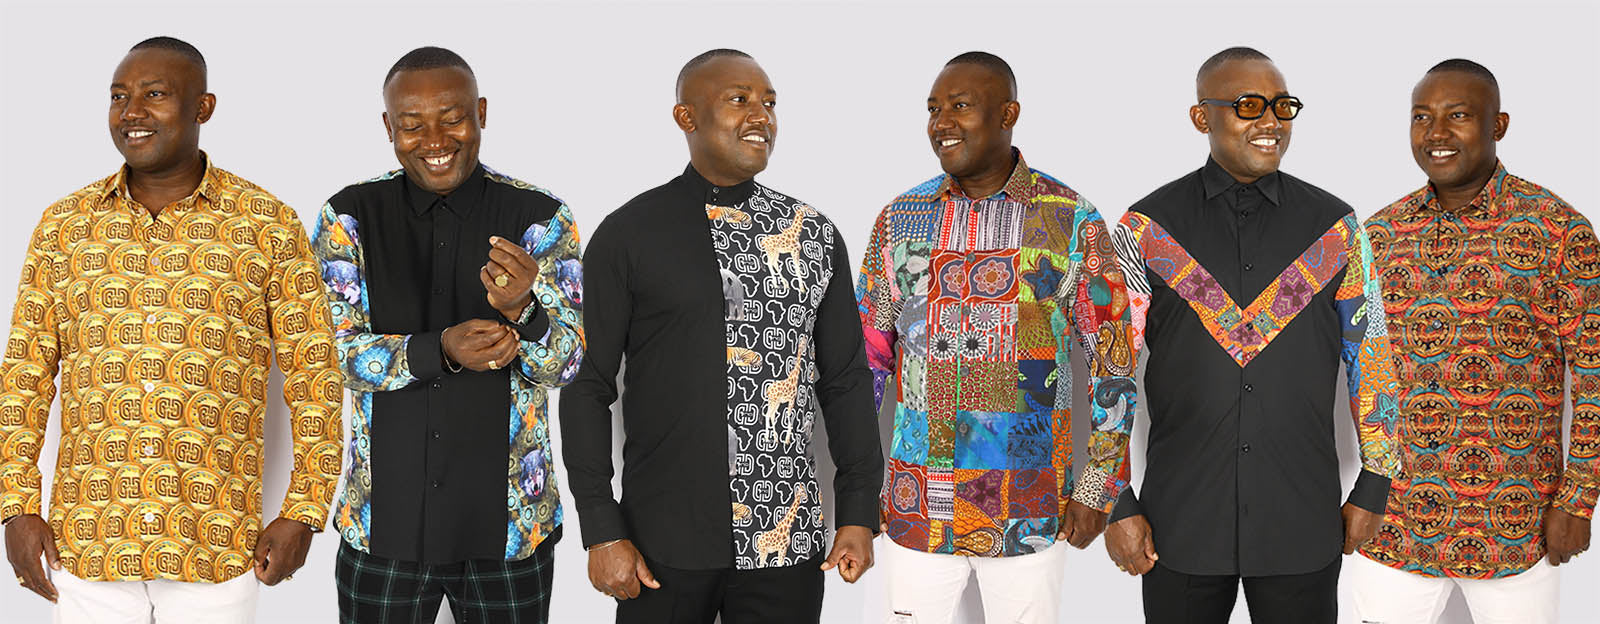 Discover the most up-to-date men's shirts | KY | Stylish African Shirts for Men